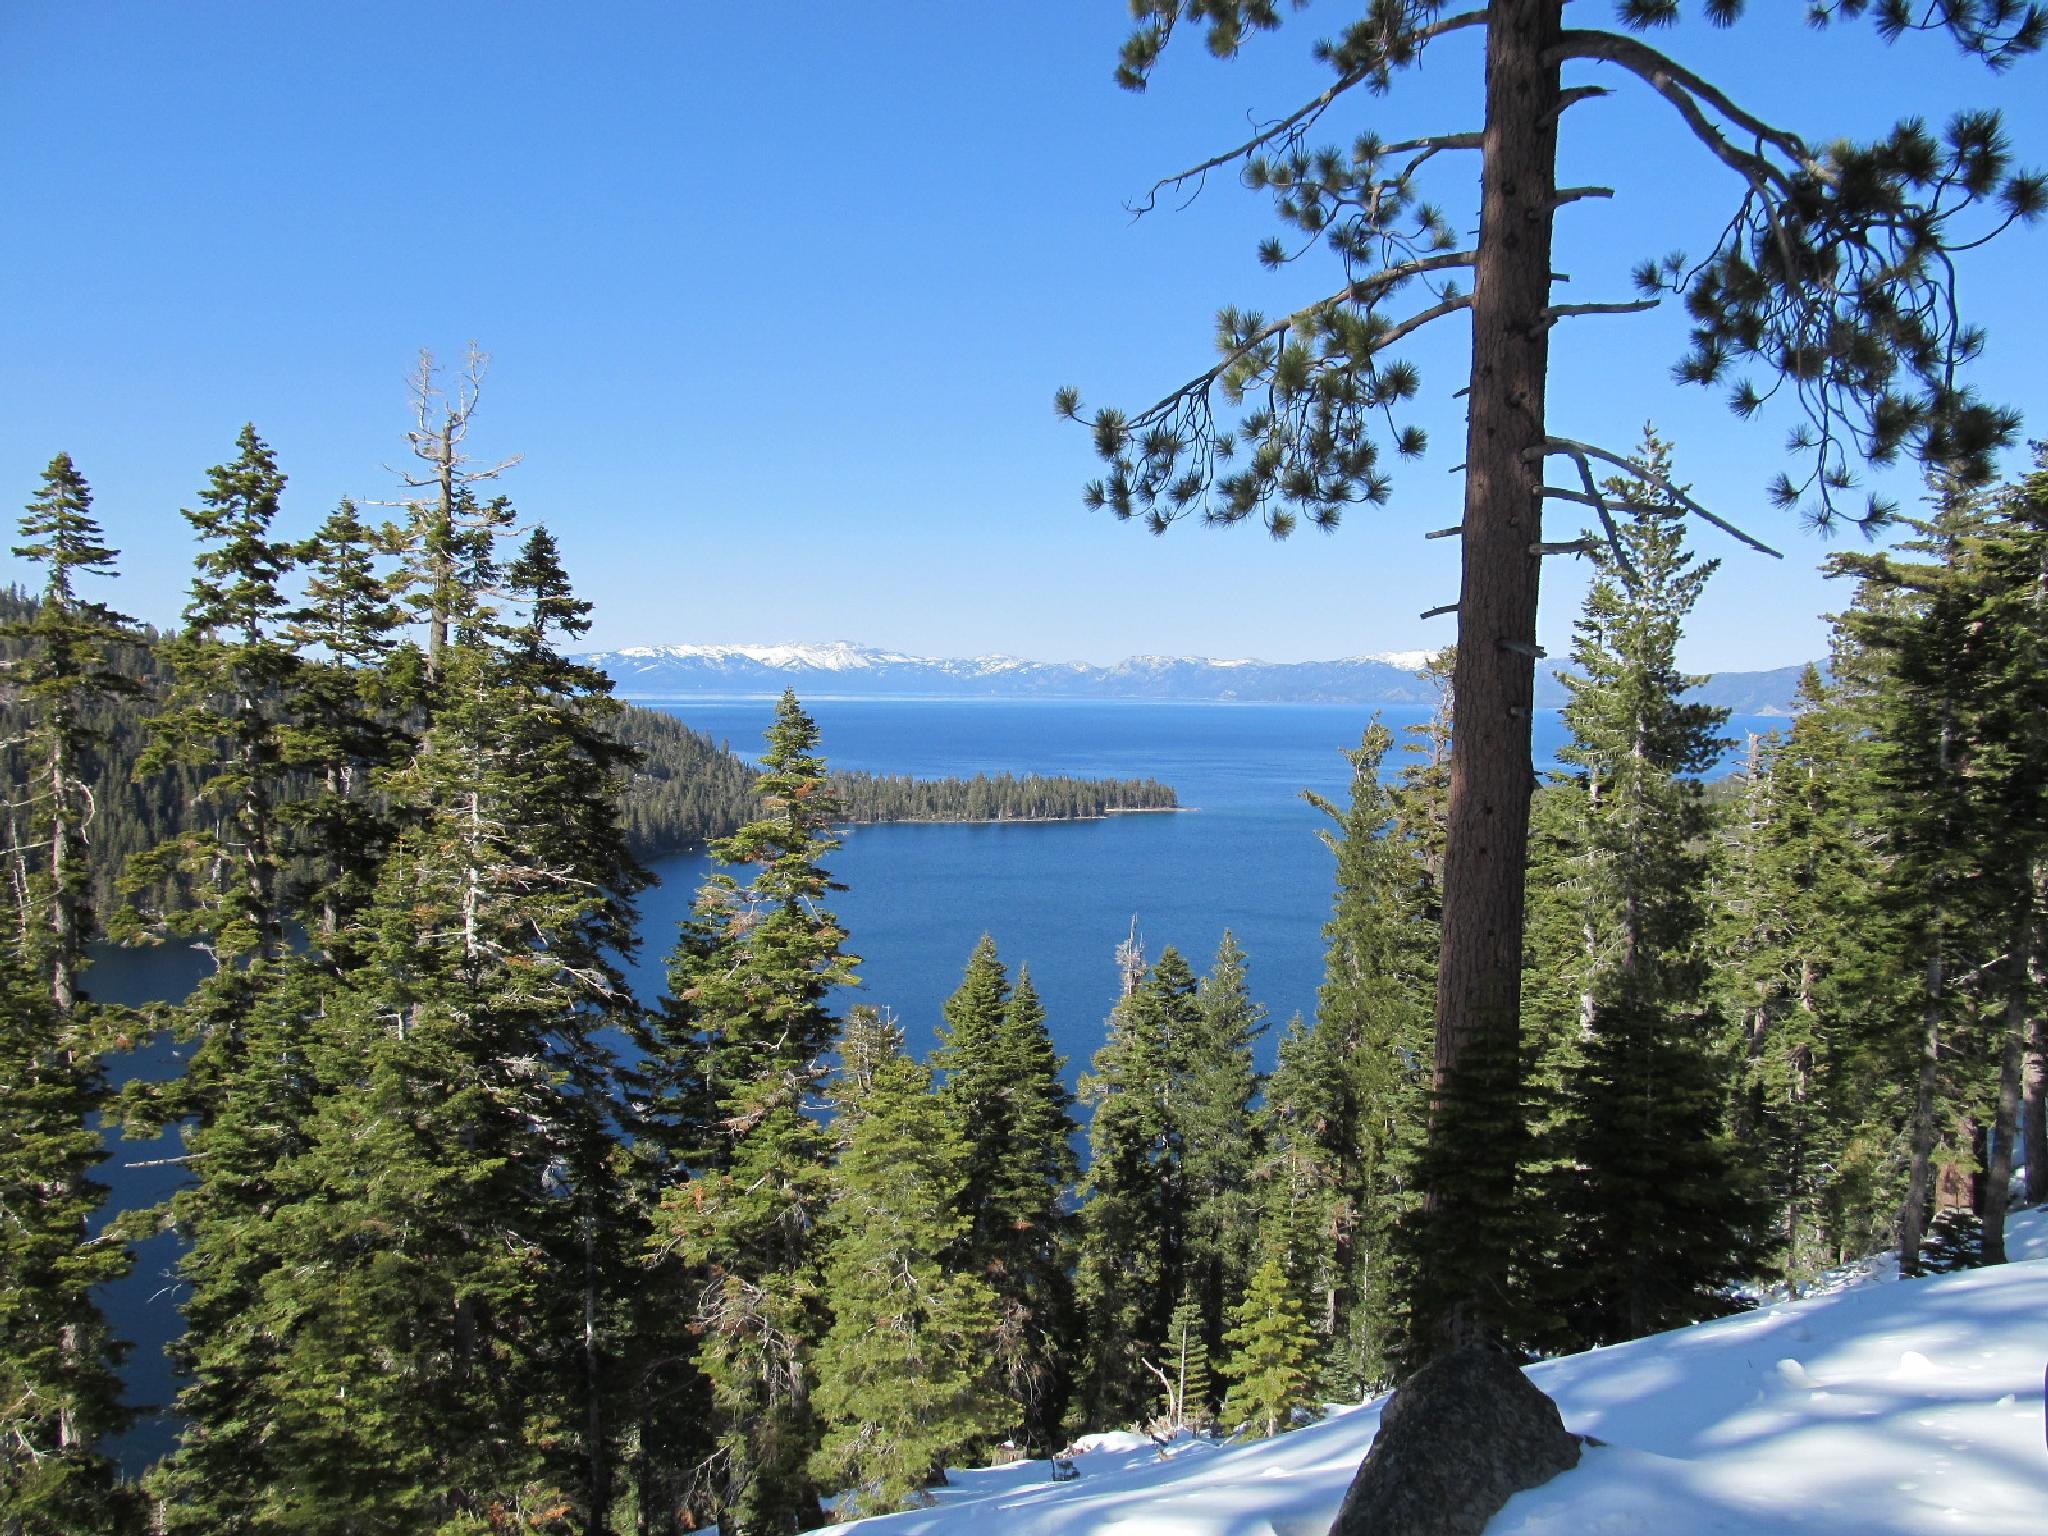 Lake Tahoe by Per Göthe